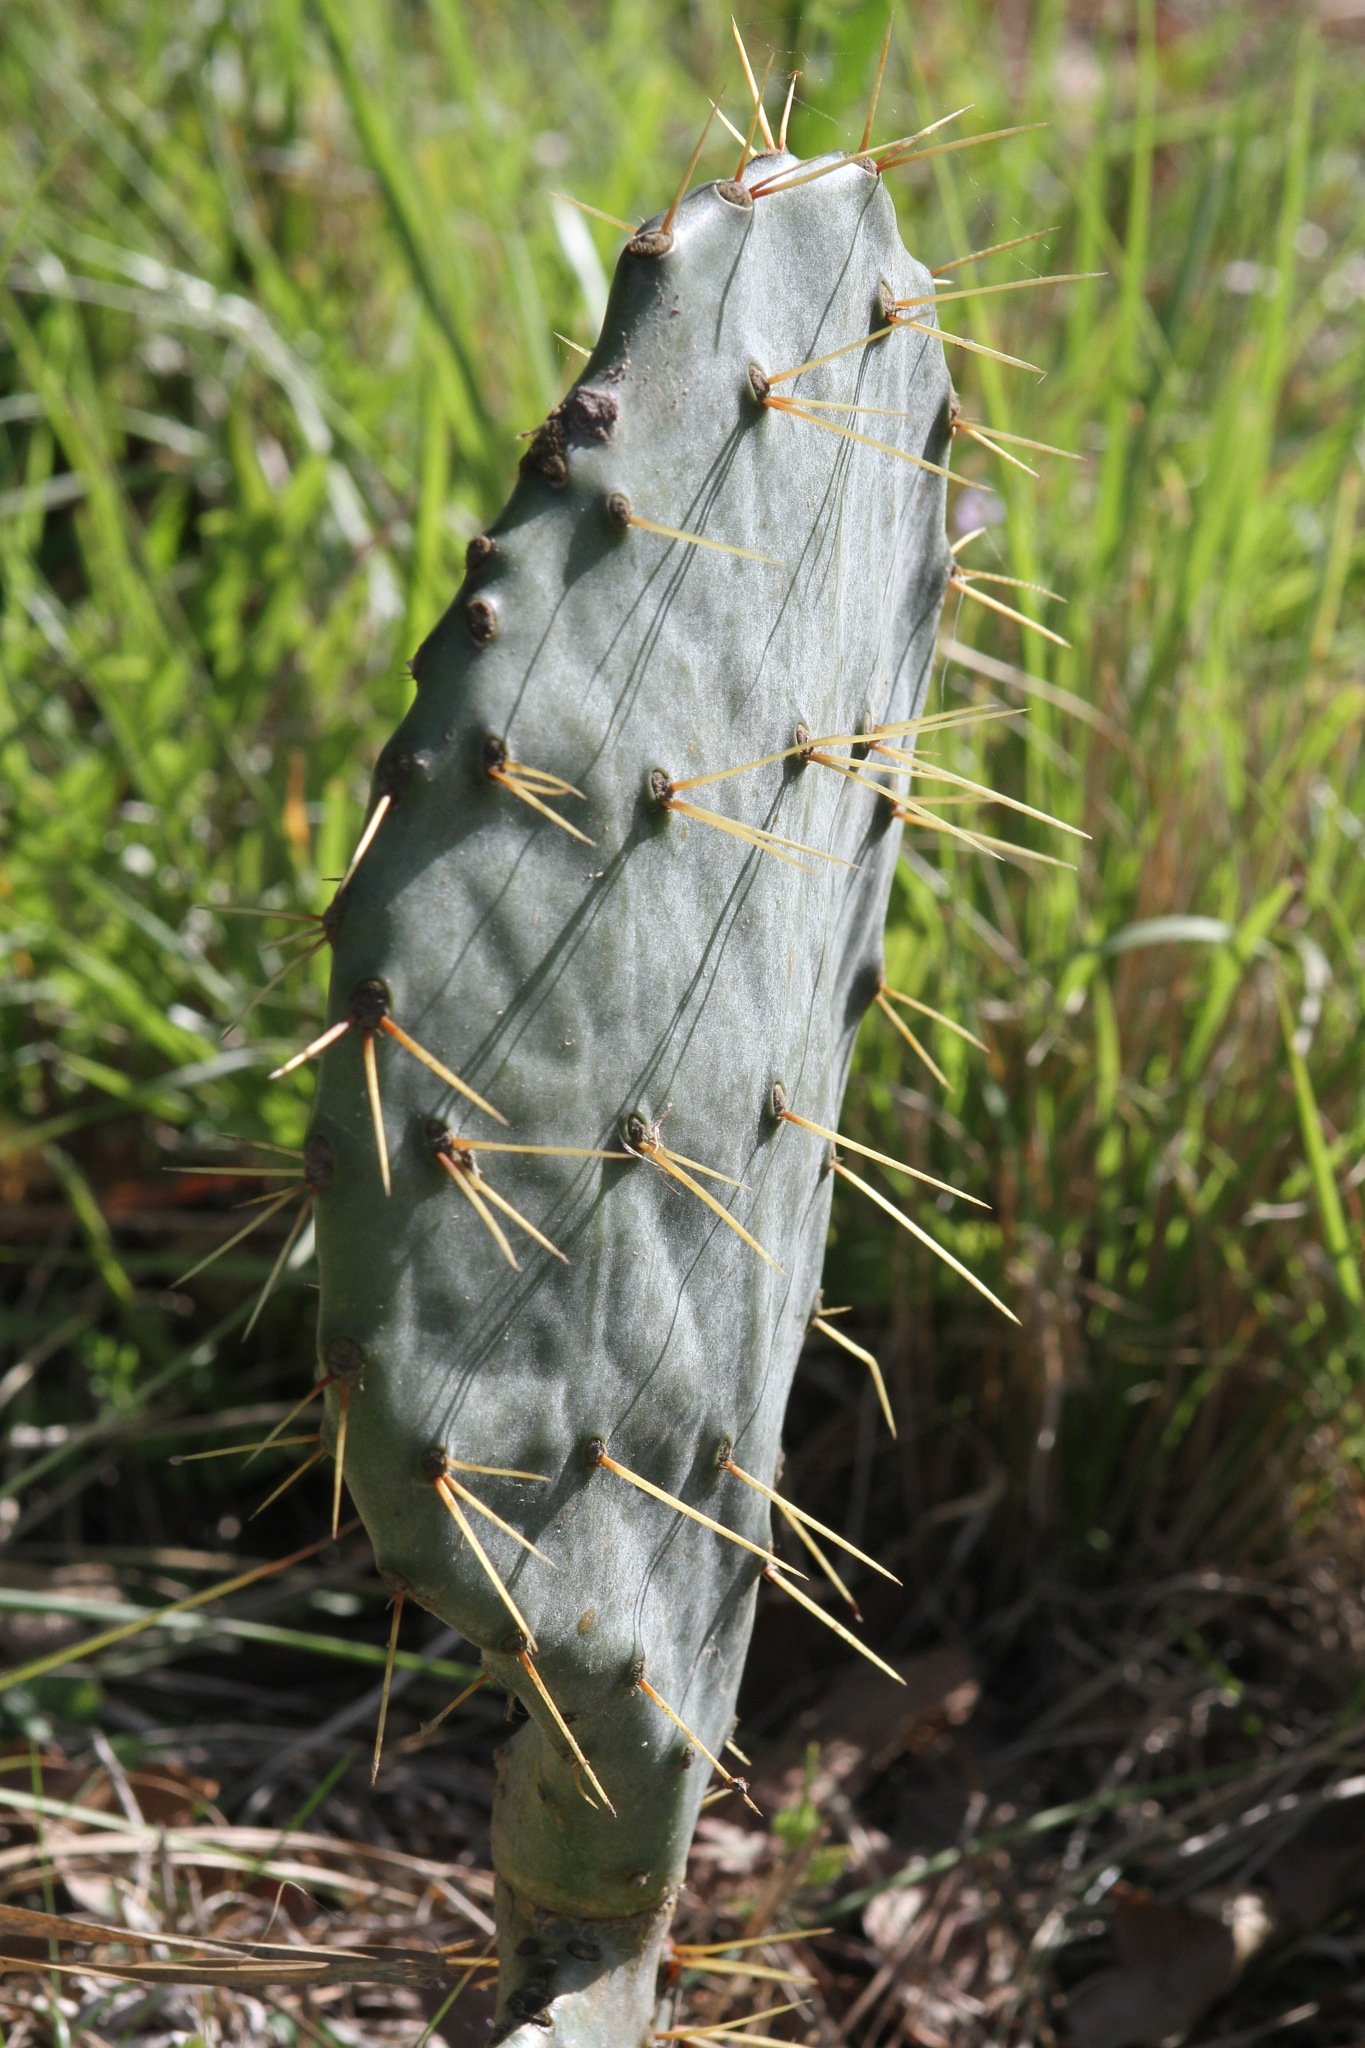 A prickly situation by EPDatabert